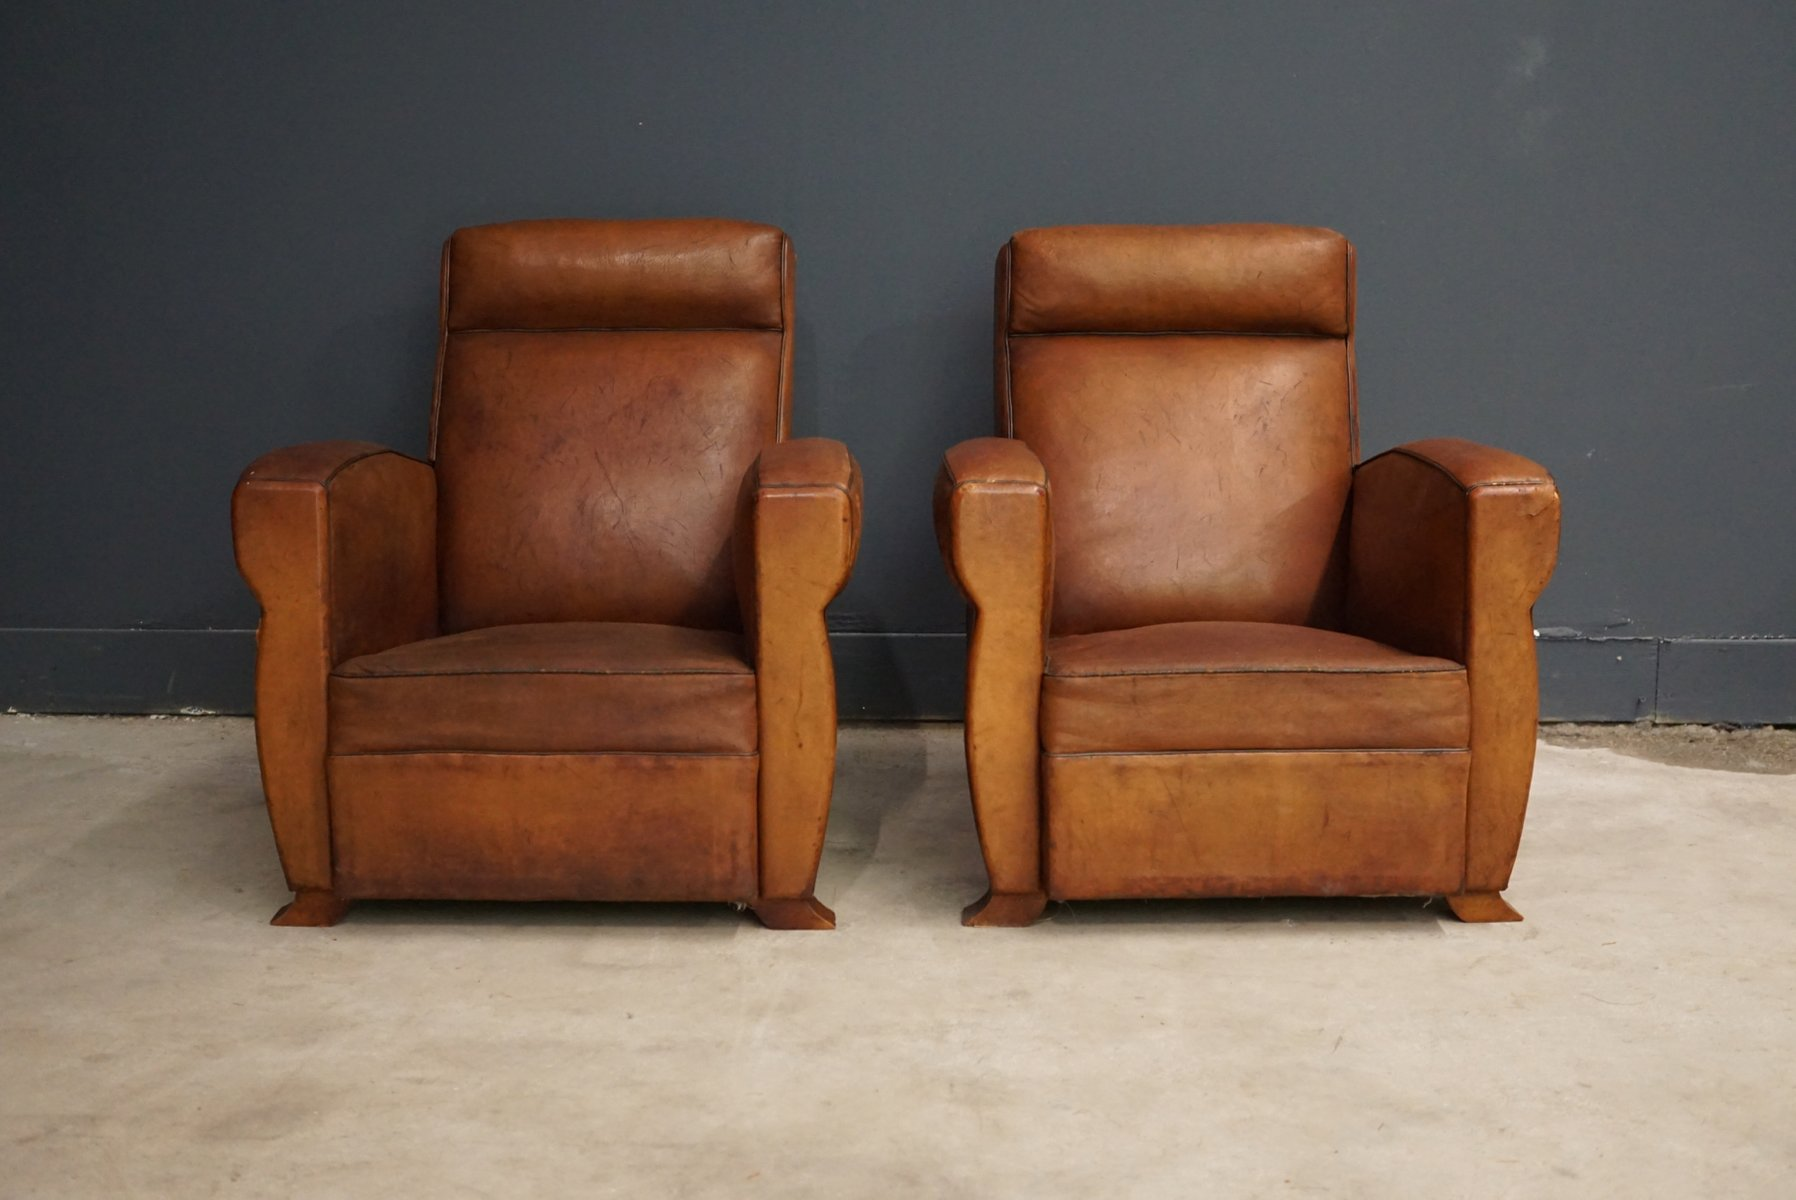 french cognac leather club chairs 1940s set of 2 for sale at pamono. Black Bedroom Furniture Sets. Home Design Ideas